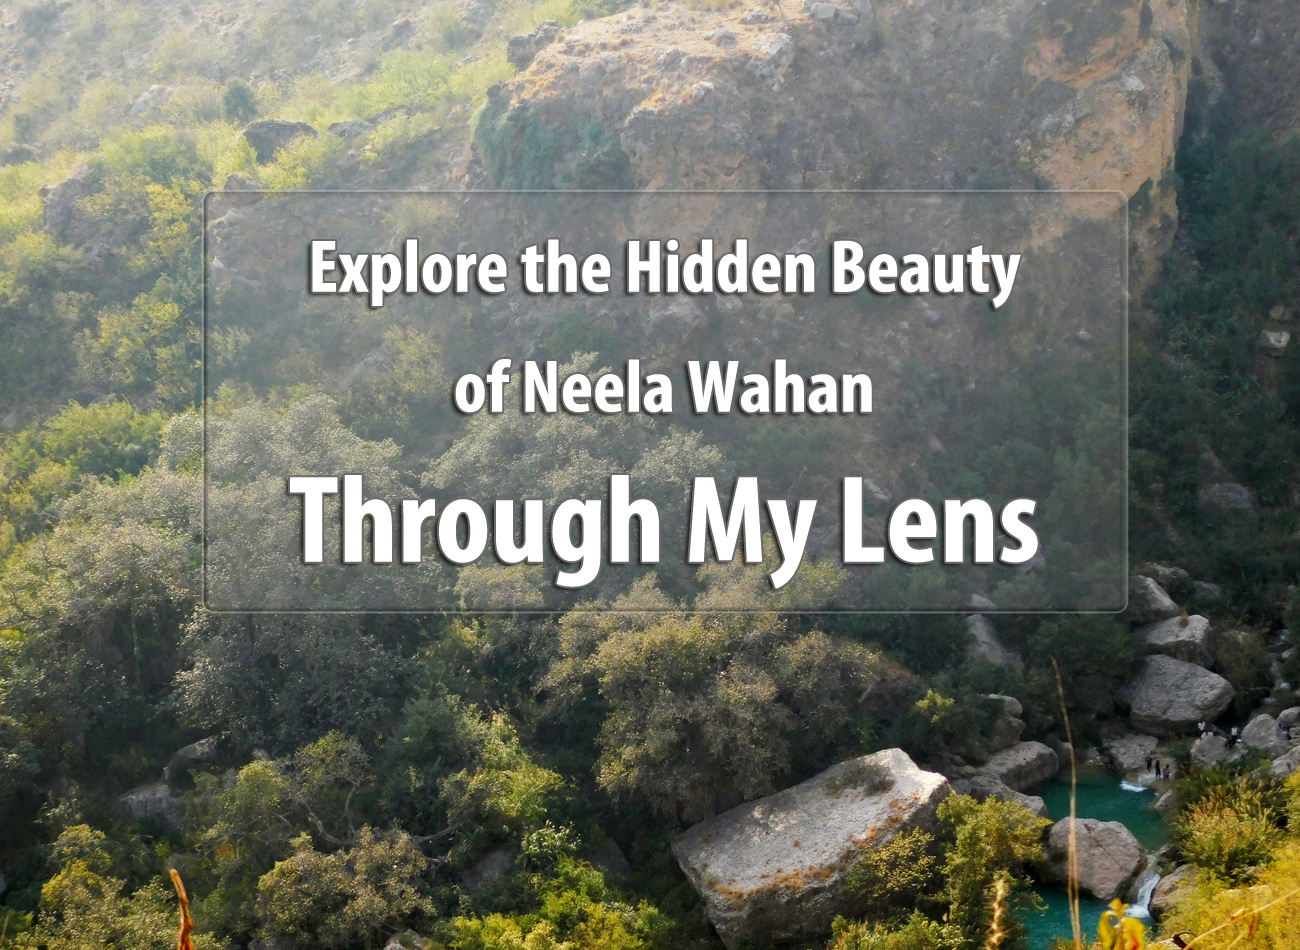 Explore the Hidden Beauty of Neela Wahan Through My Lens